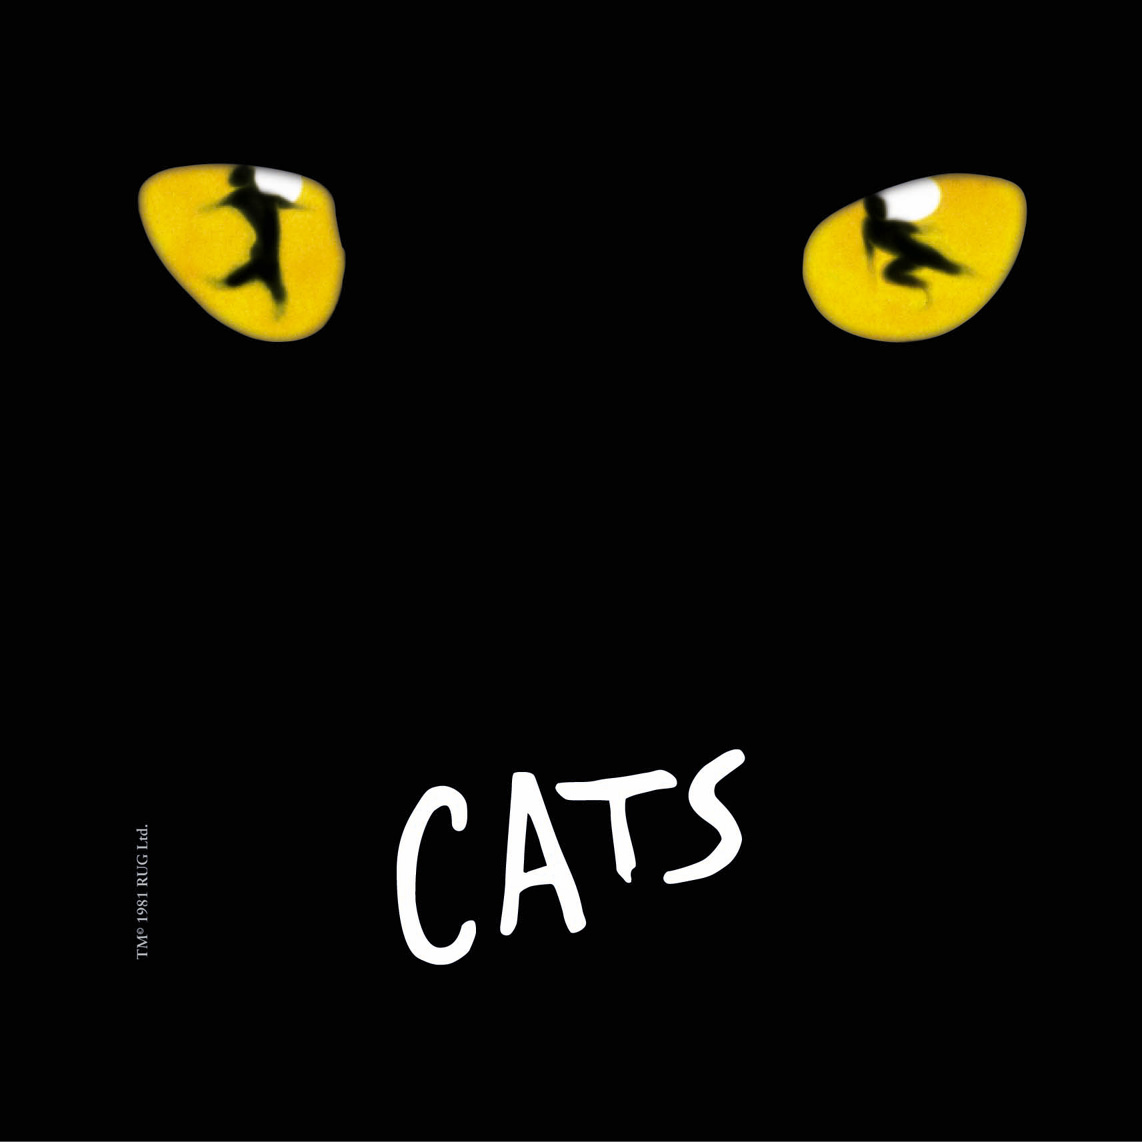 1142x1142 Dyk That The Logo For The Musical Cats Has The Silhouettes